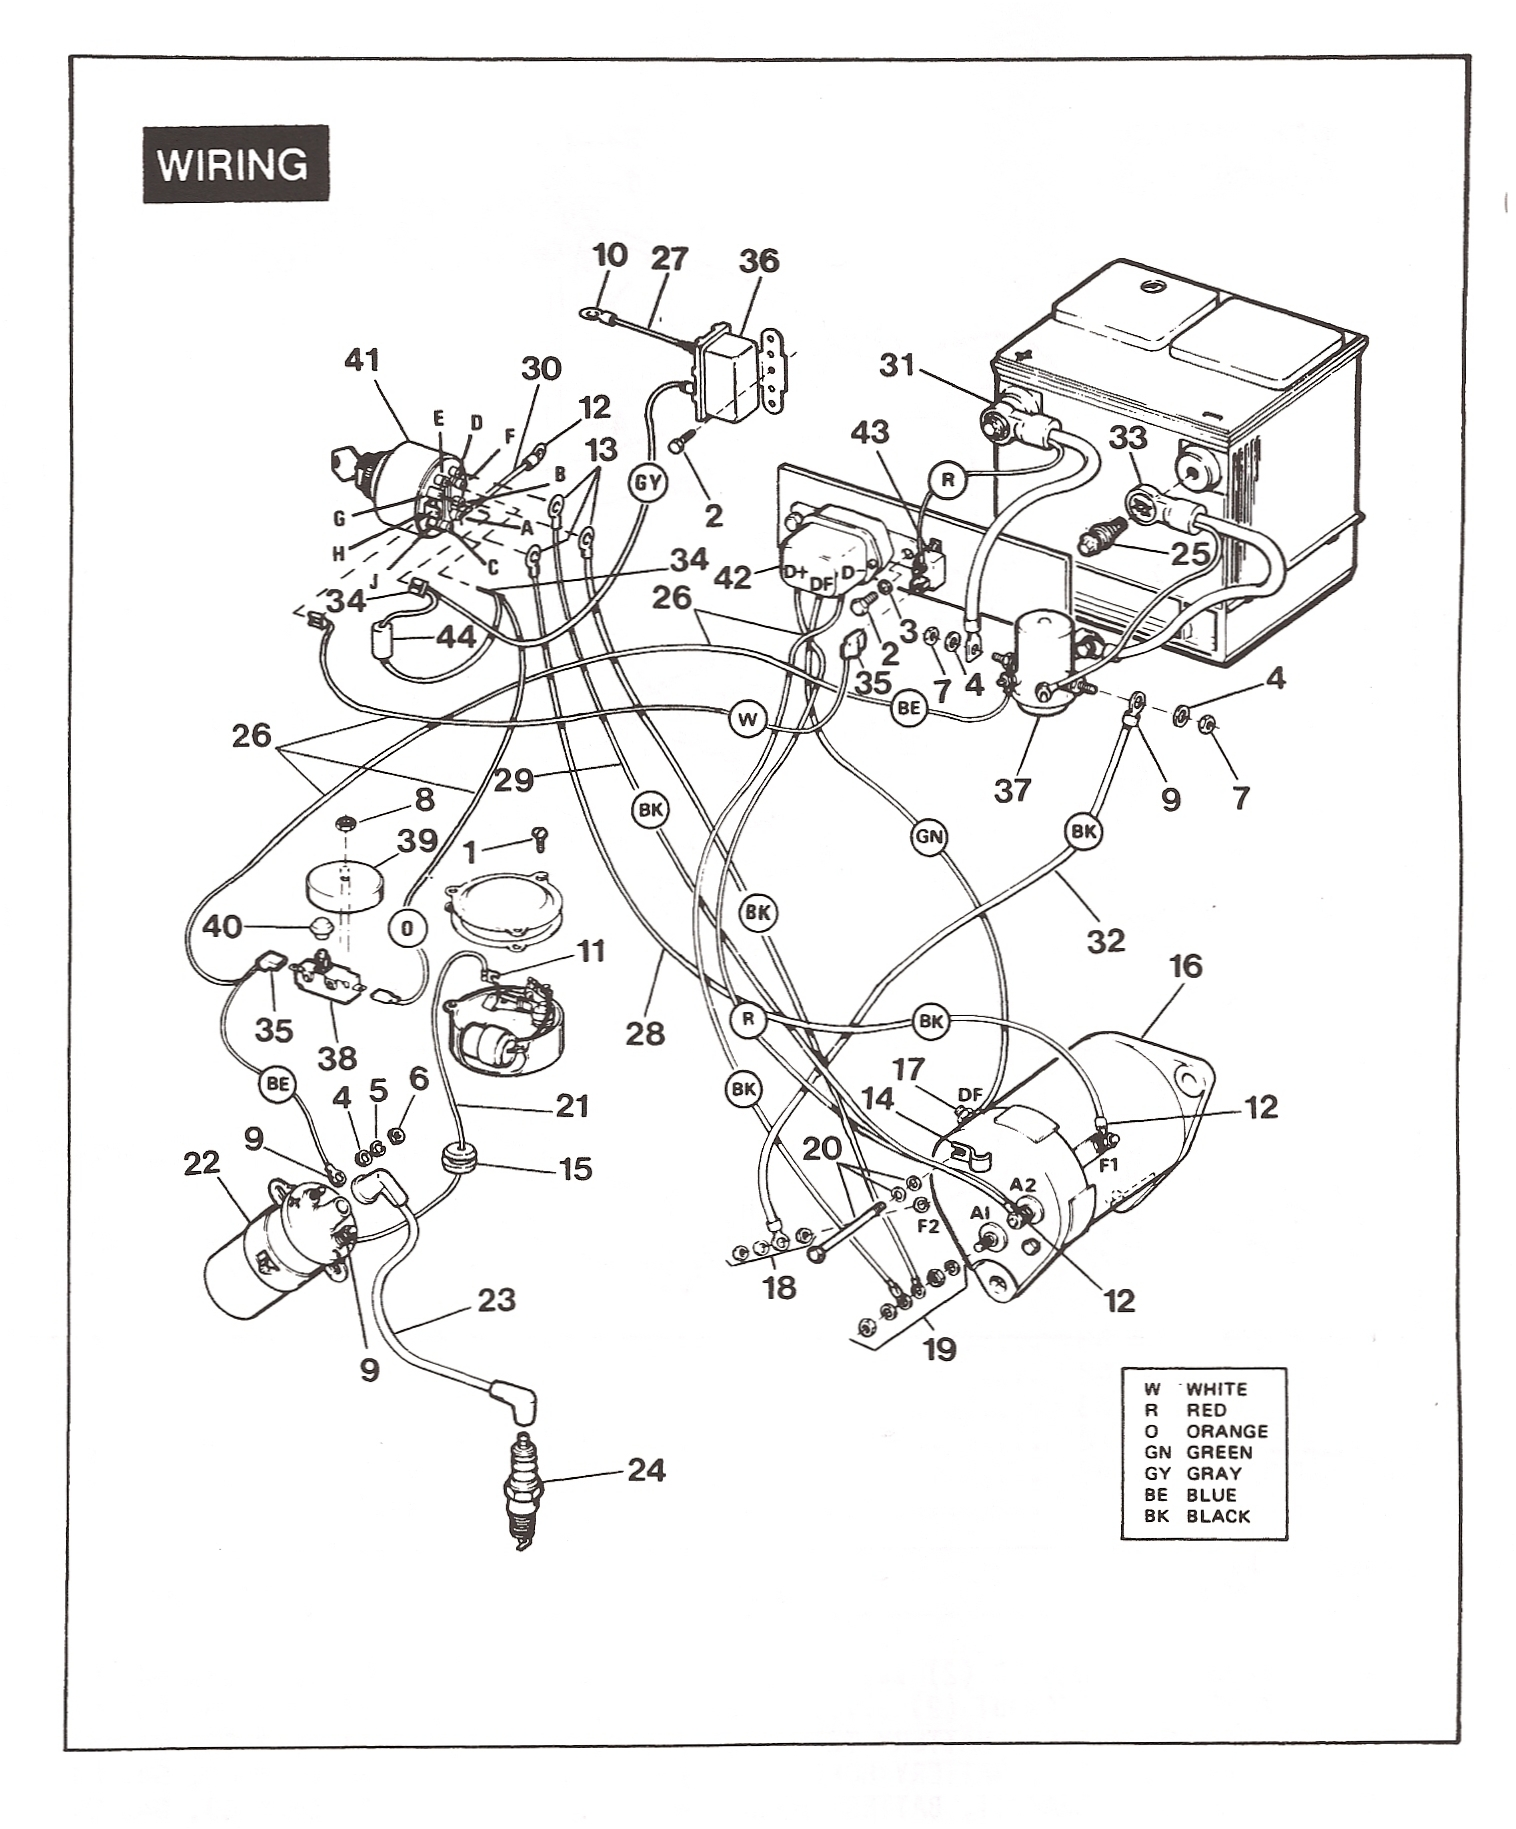 82_86_Columbia_Harley par car engine diagram par wiring diagrams instruction Yamaha Outboard Wiring Diagram at soozxer.org